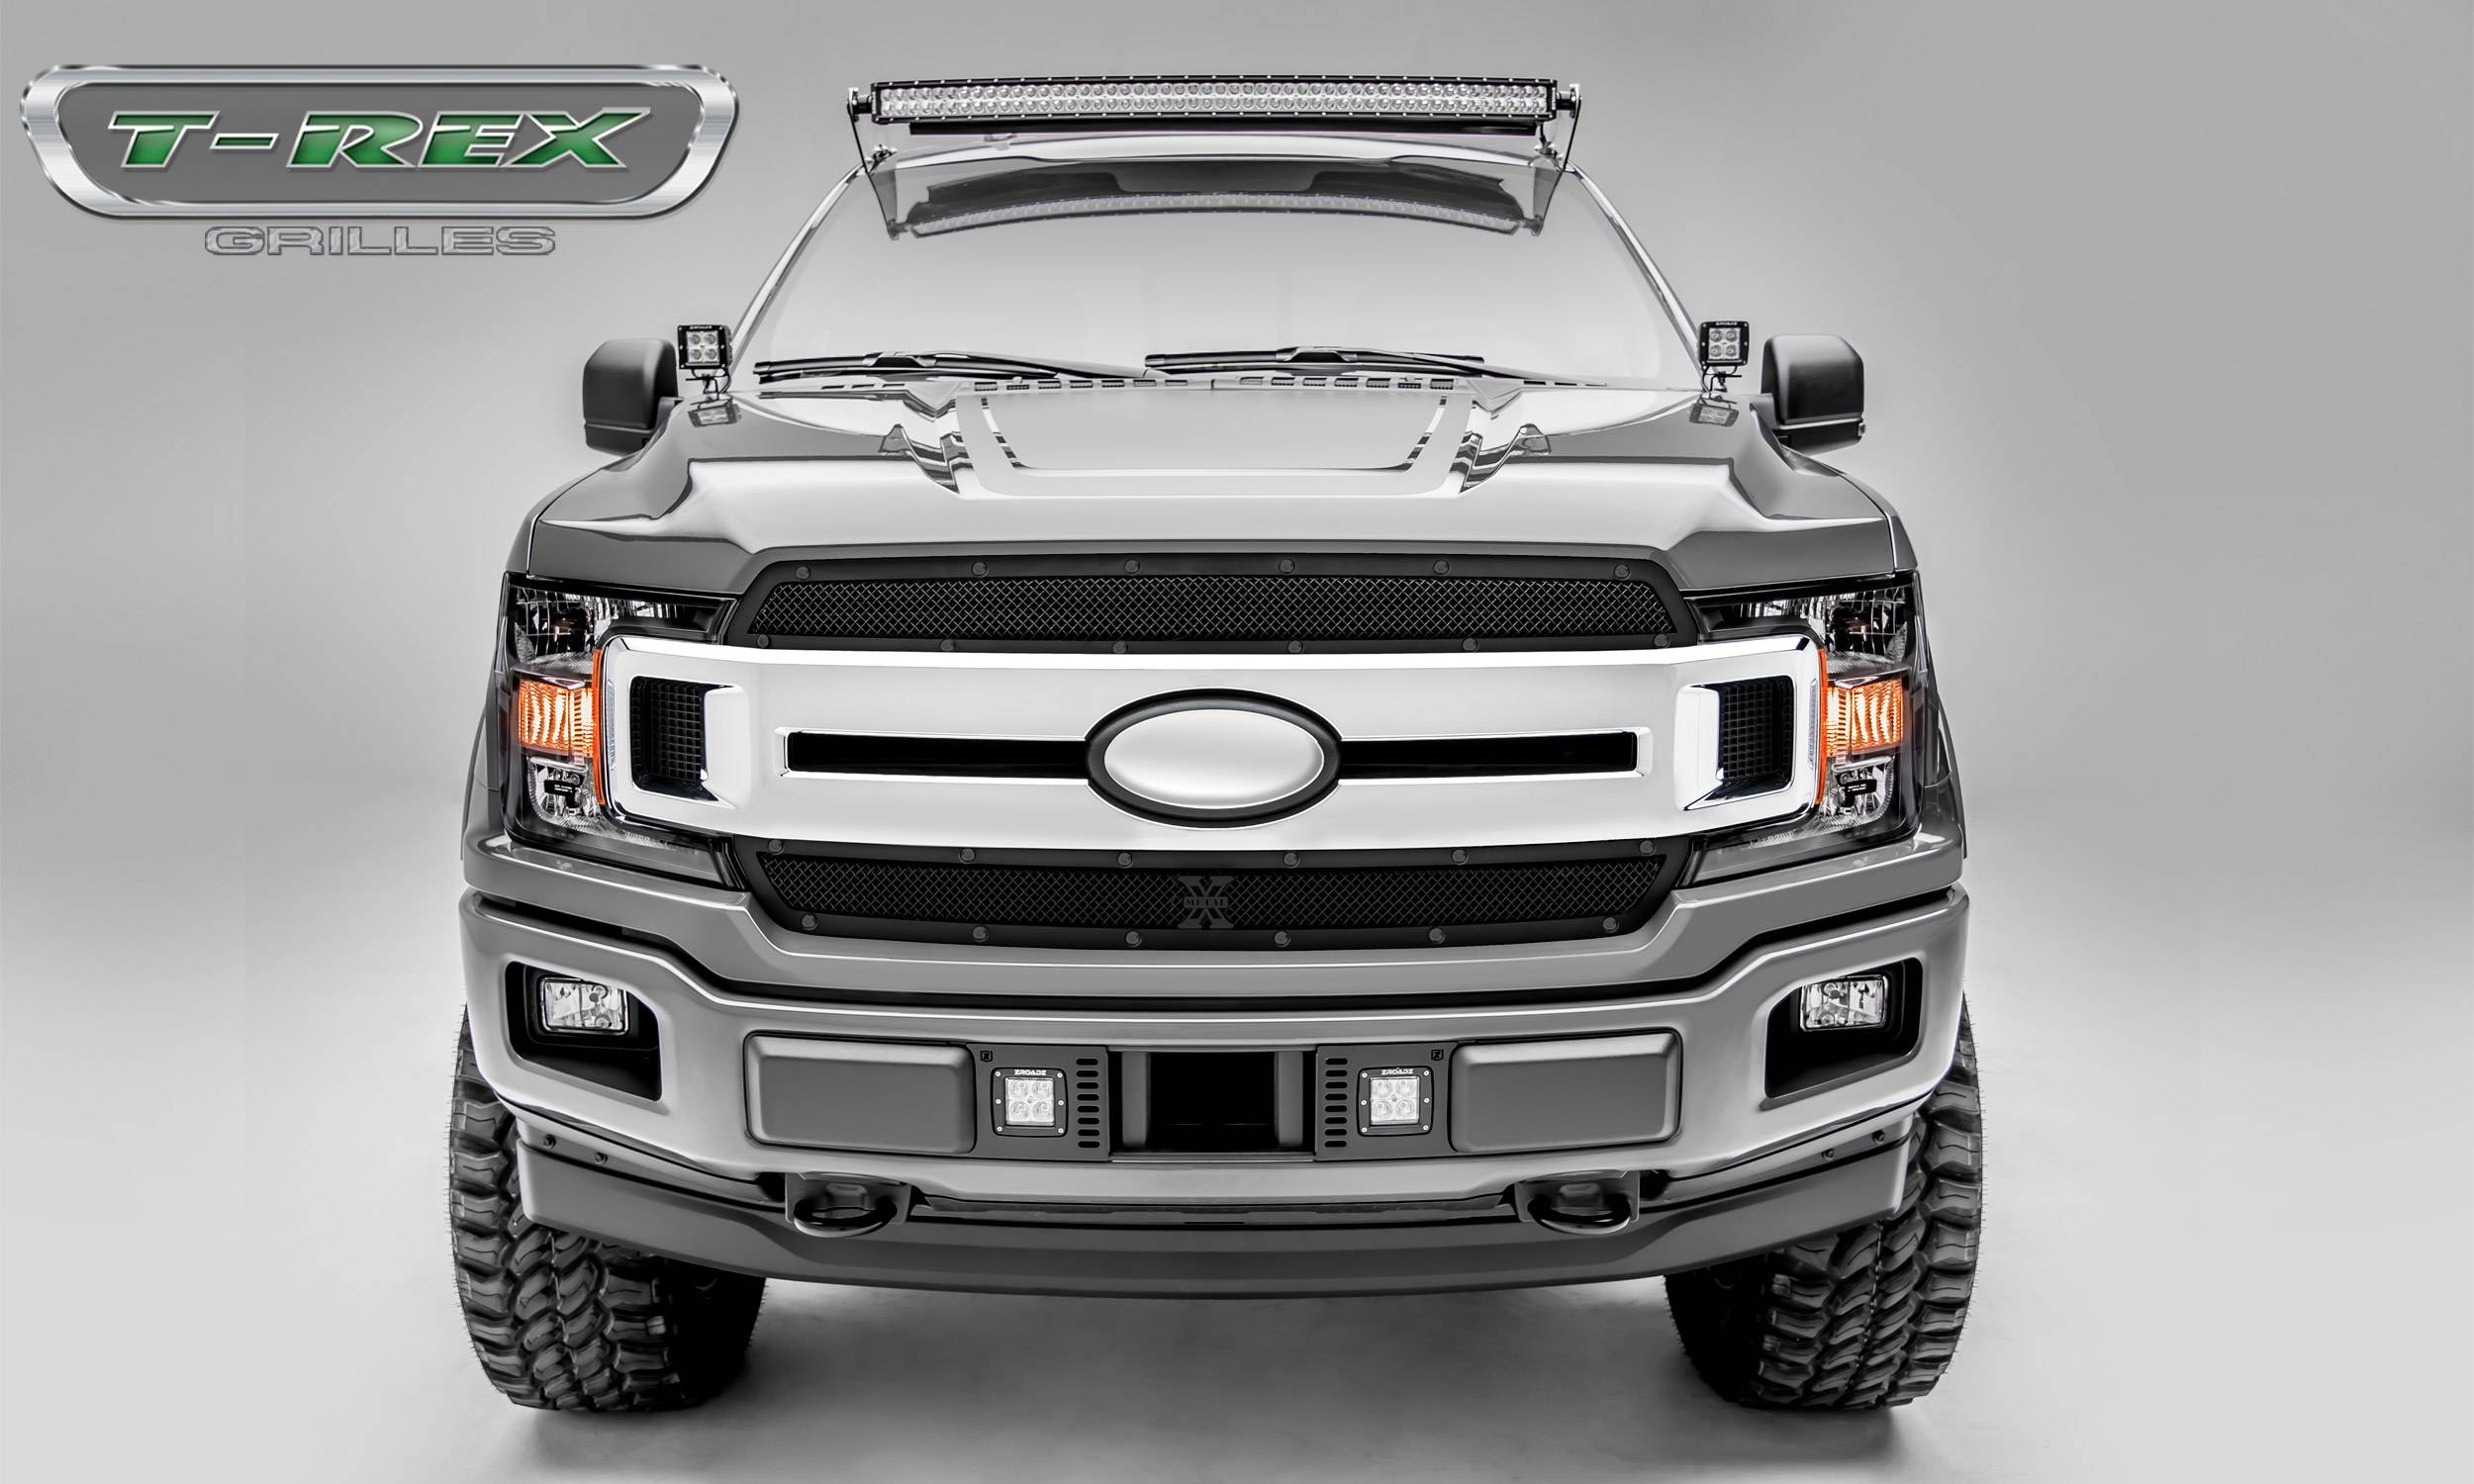 T-REX Grilles - T-REX Ford F-150 - X-Metal STEALTH Series - 2 PC Main Grille Overlay / Insert - Black Studs with Black Powdercoat Finish - Pt # 6715691-BR